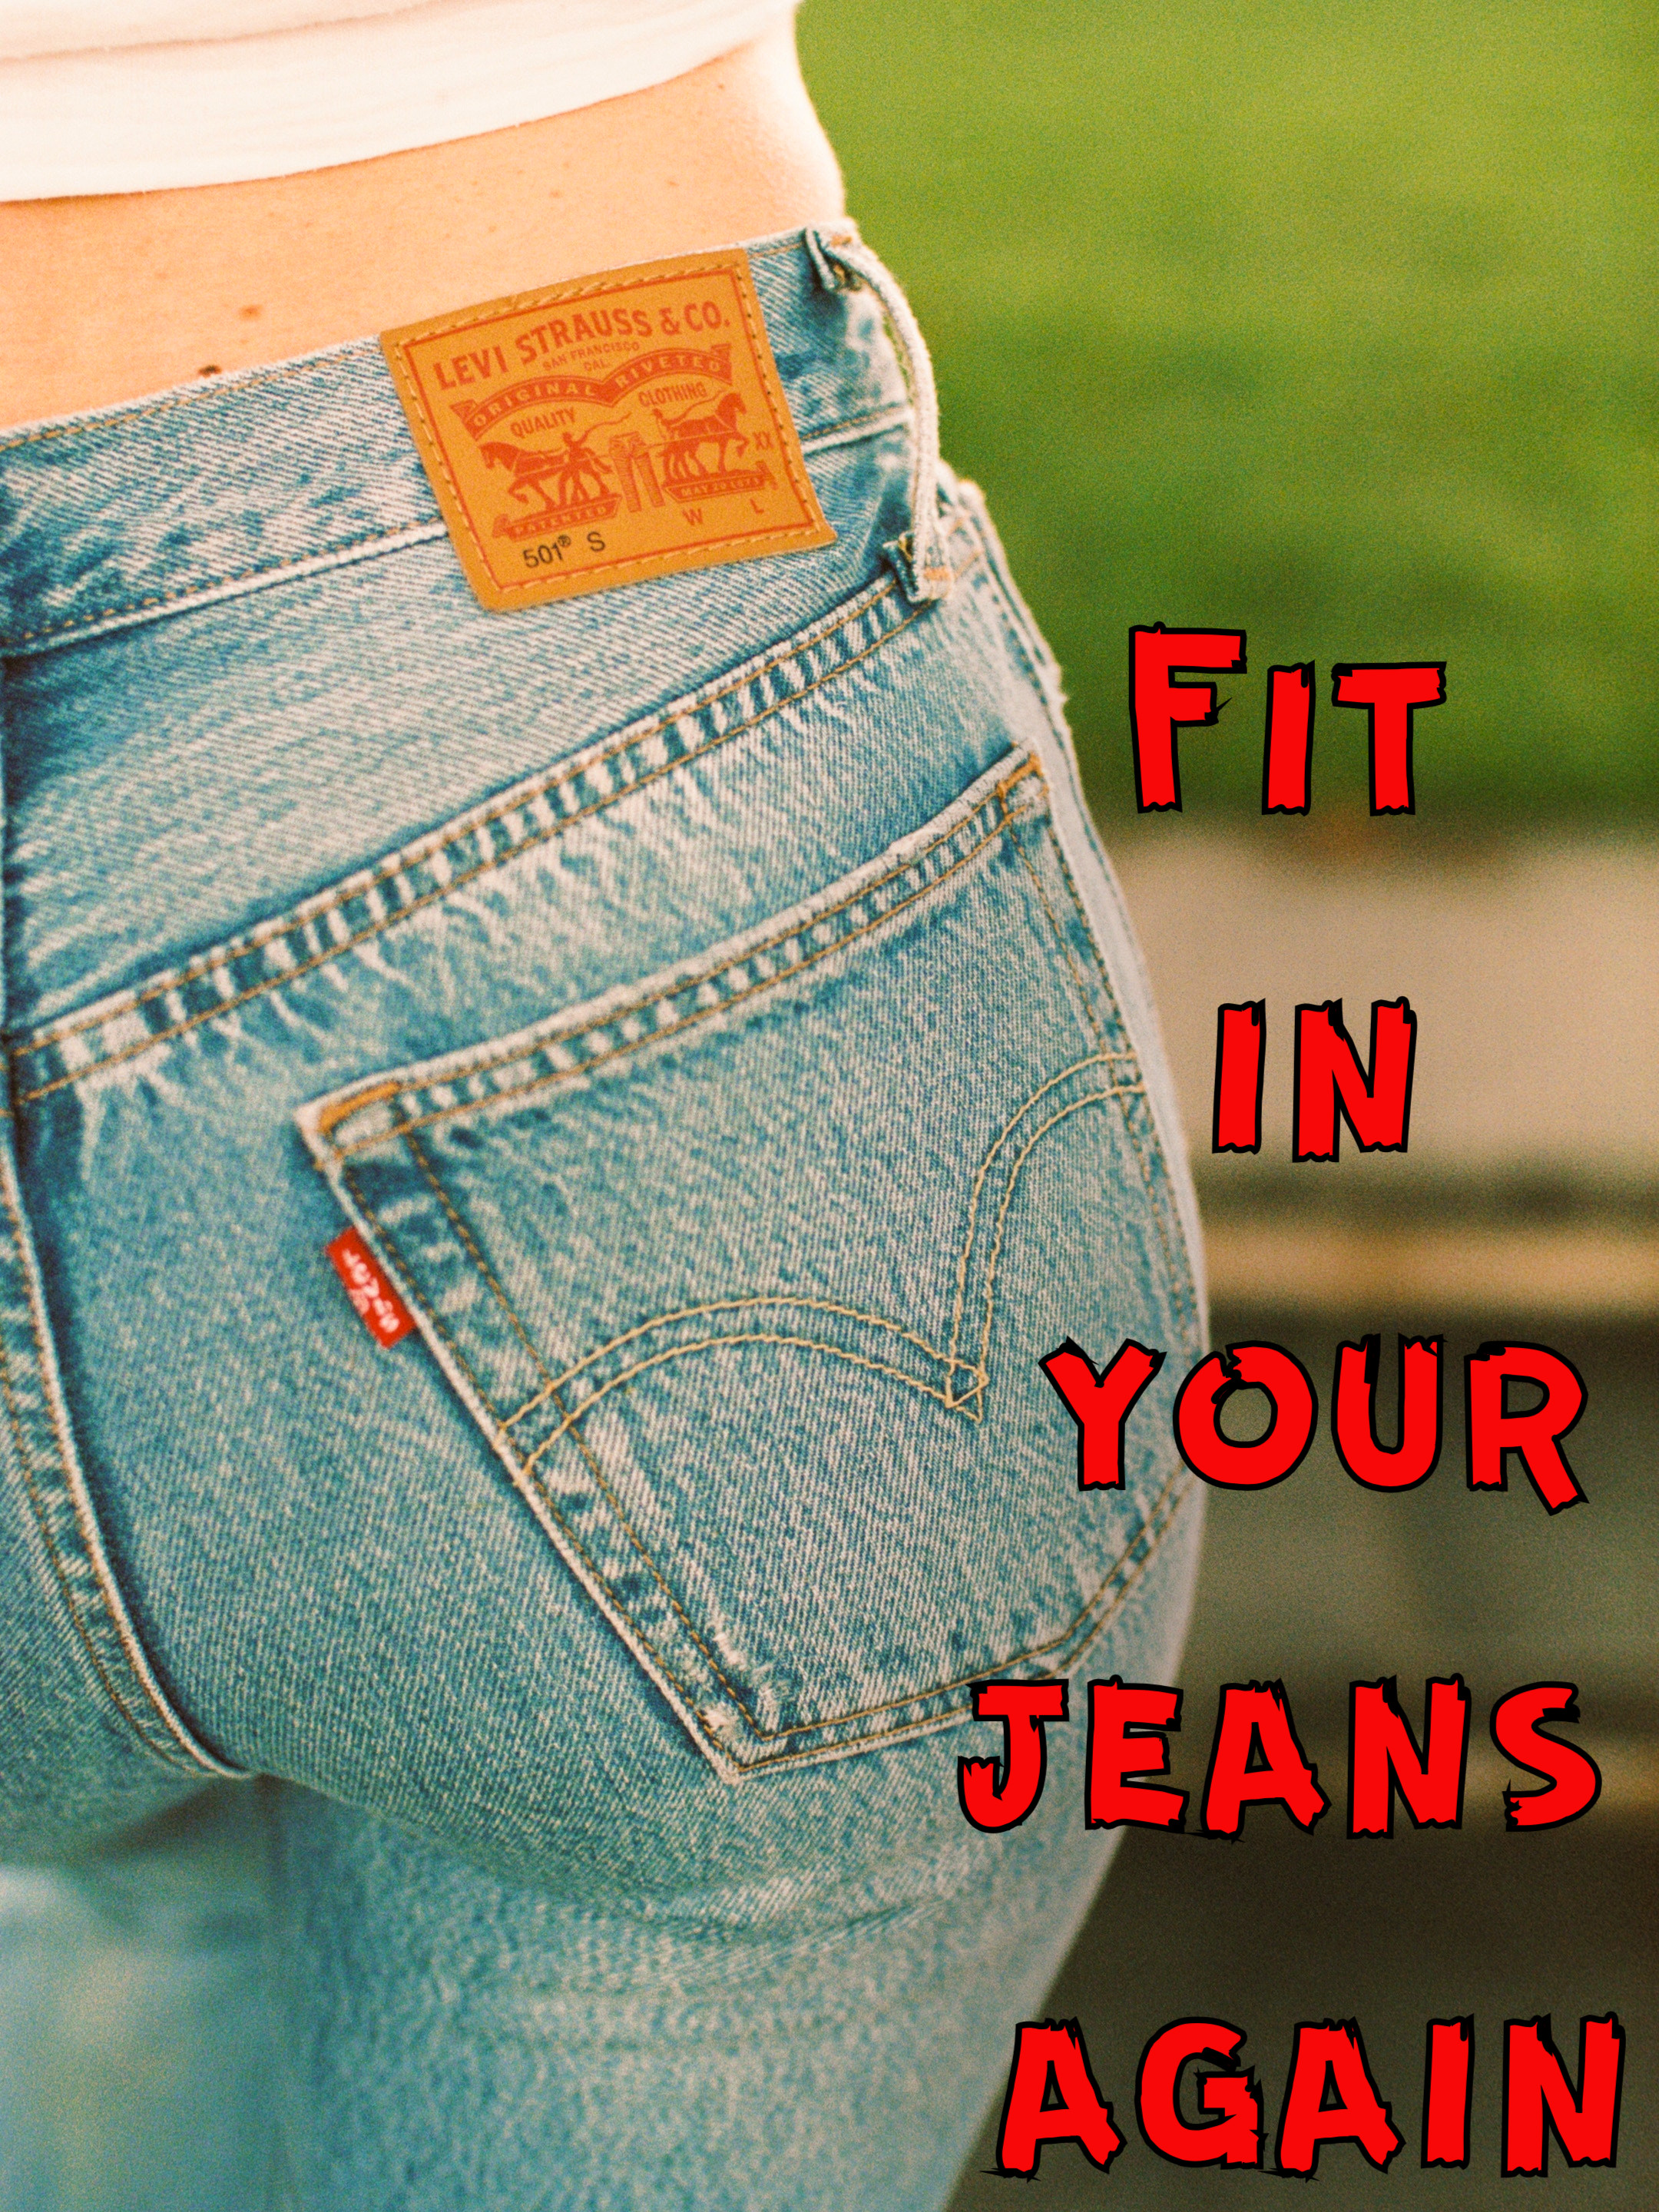 fit-in-your-jeans-again-diet.jpg